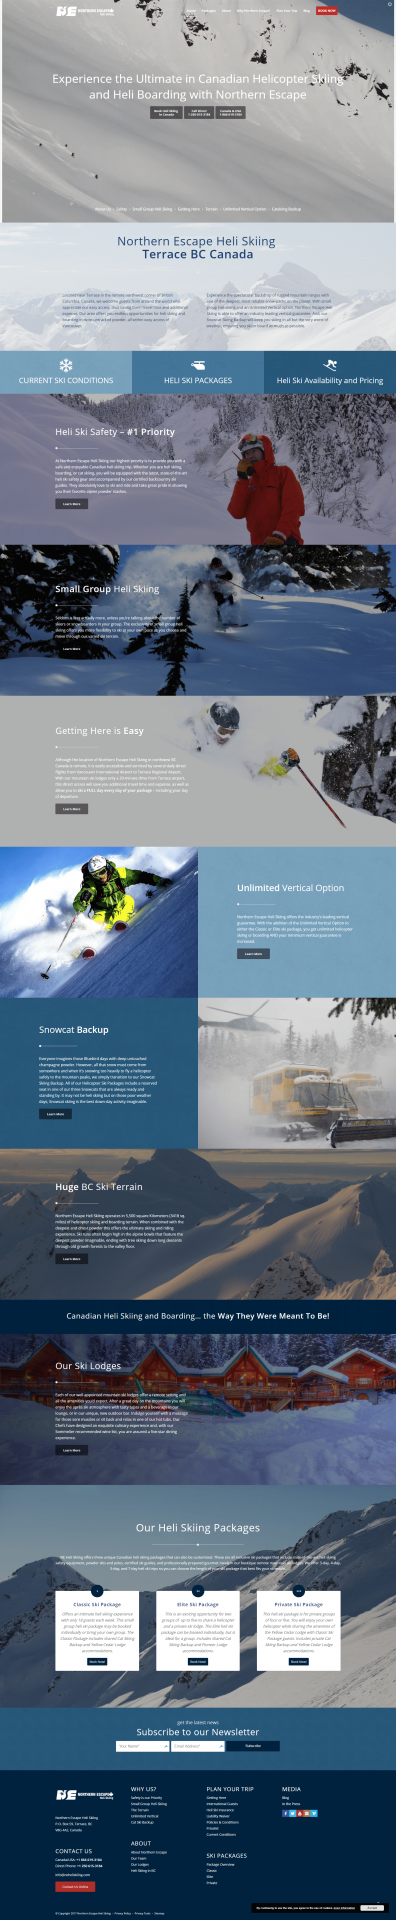 Northern Escape Heli Skiing Website Design